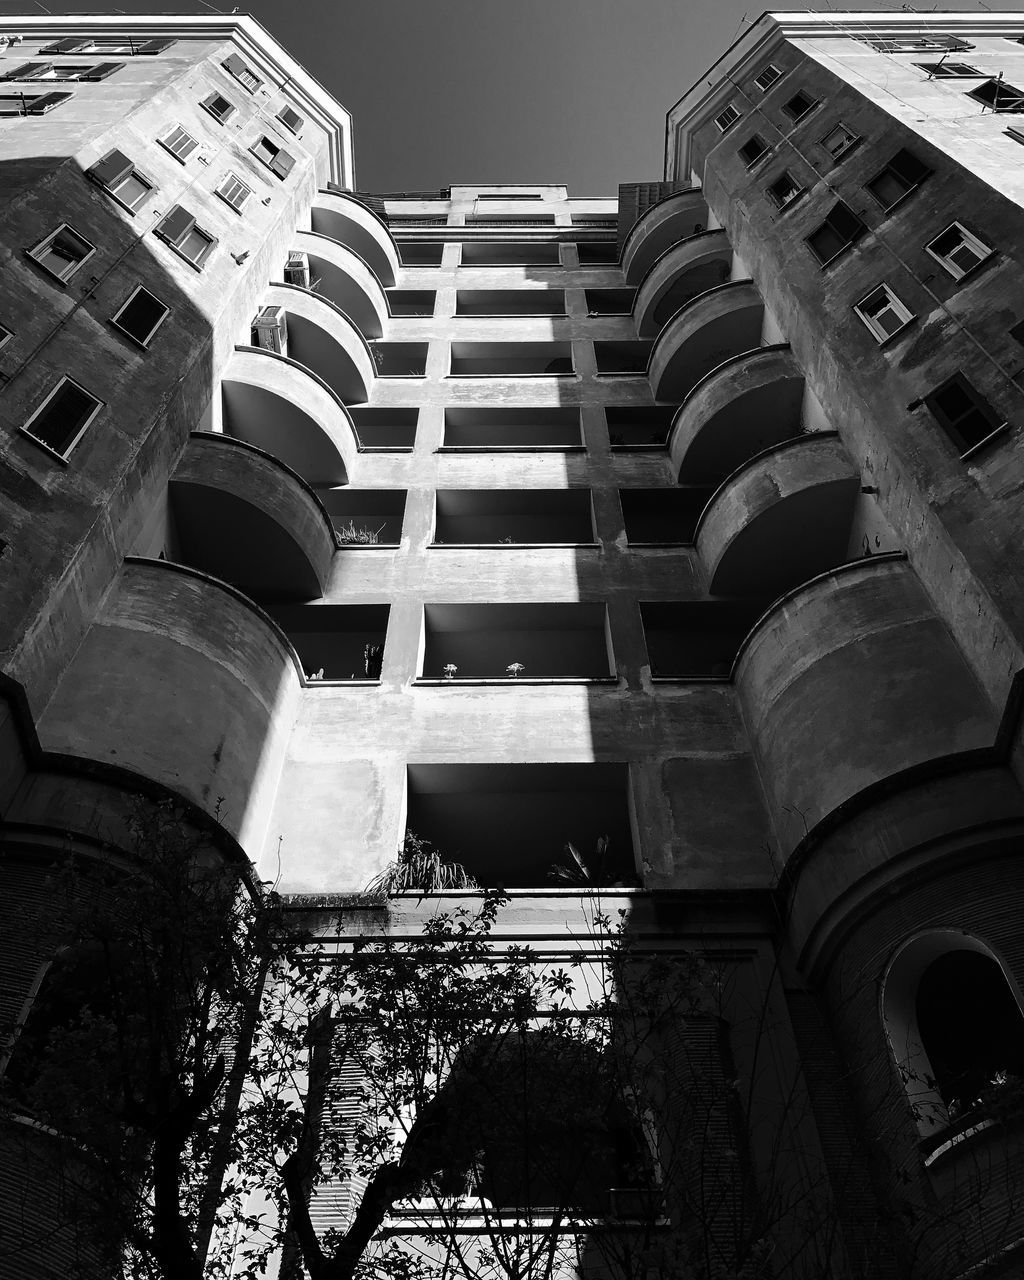 architecture, built structure, low angle view, building exterior, outdoors, day, no people, city, sky